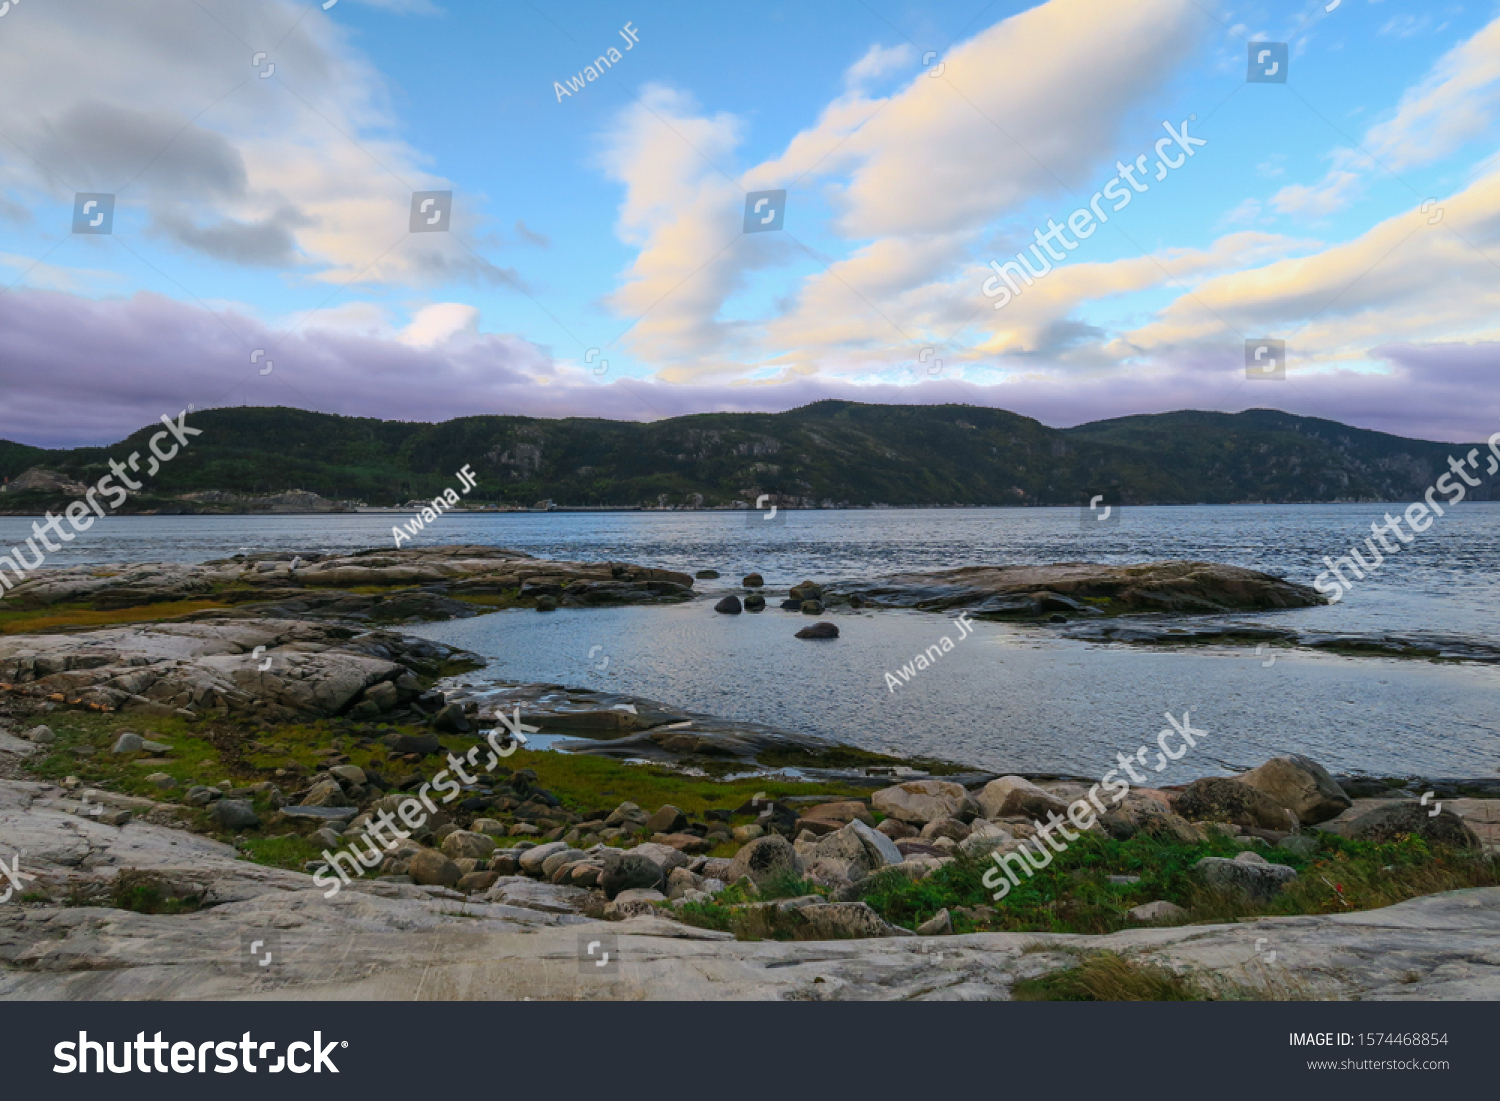 stock-photo-sunset-over-the-shore-of-the